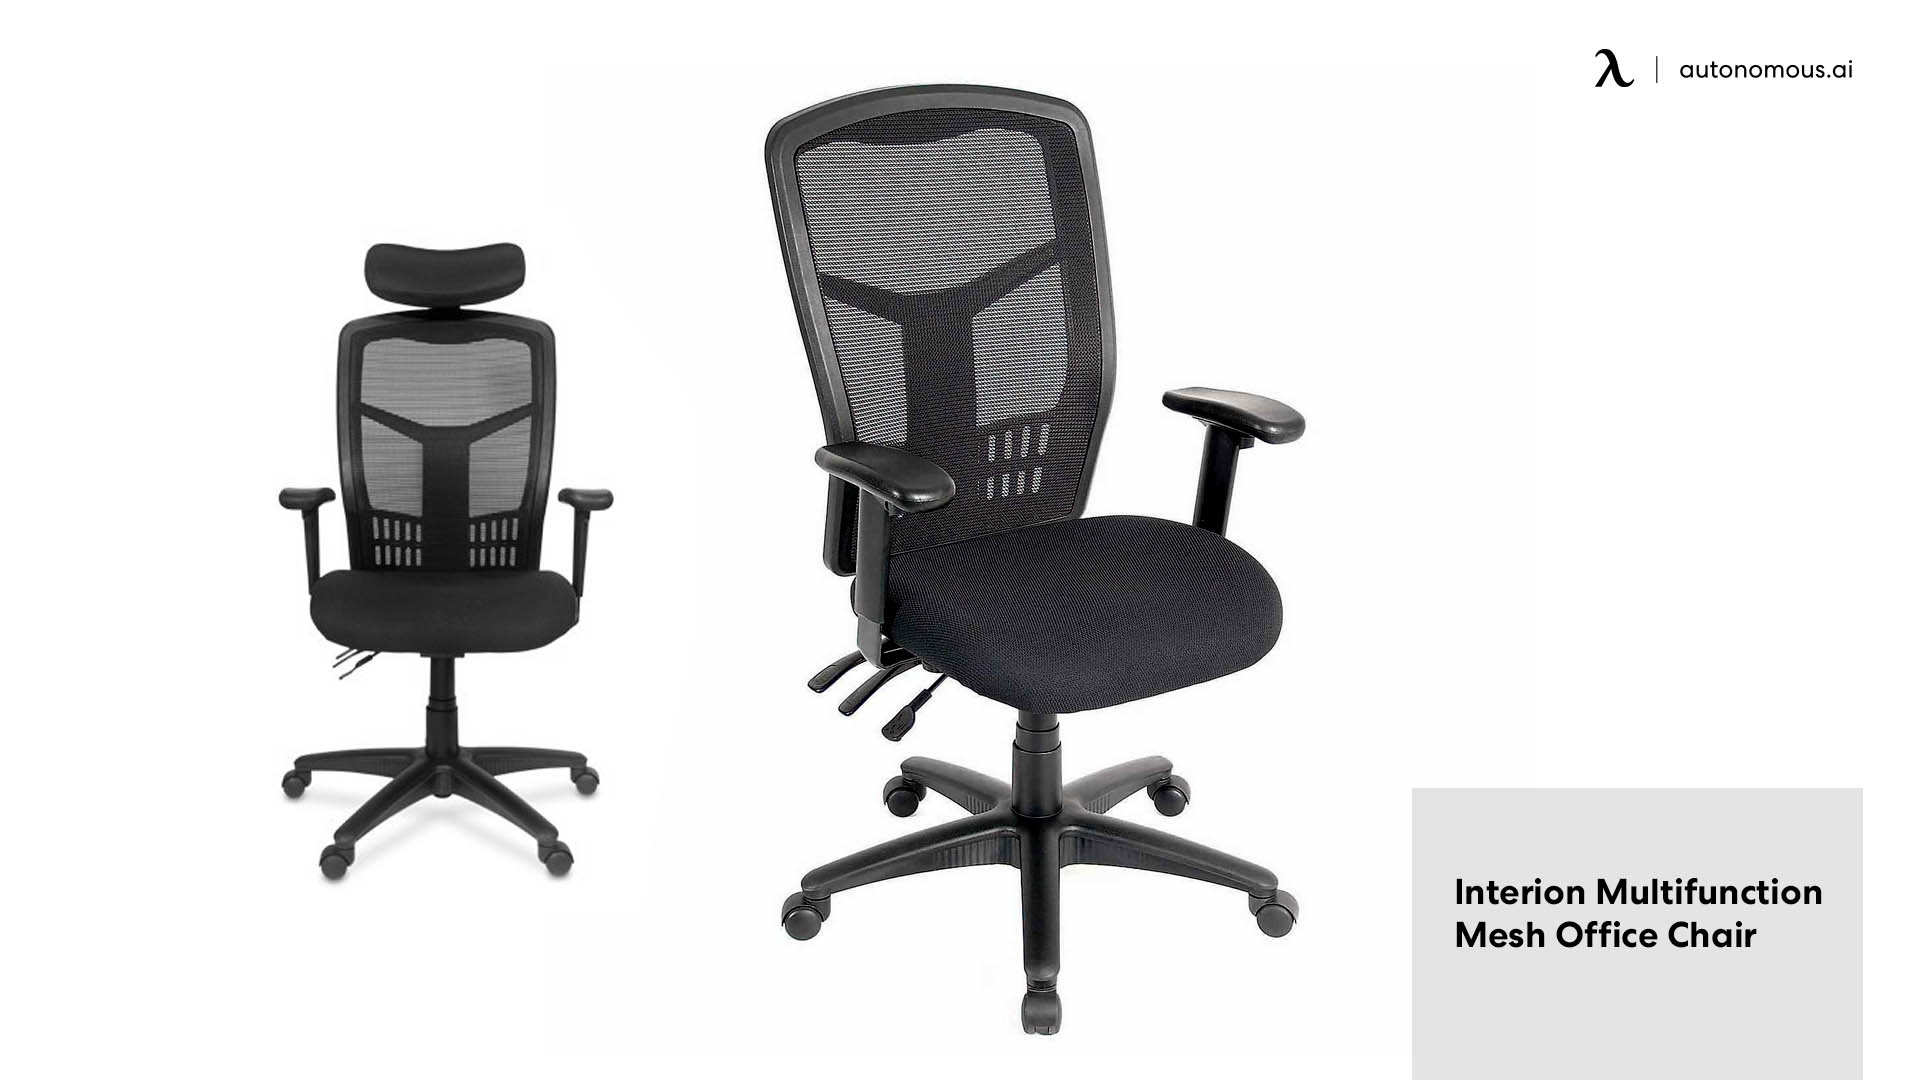 Interion Multifunction Mesh Office Chair